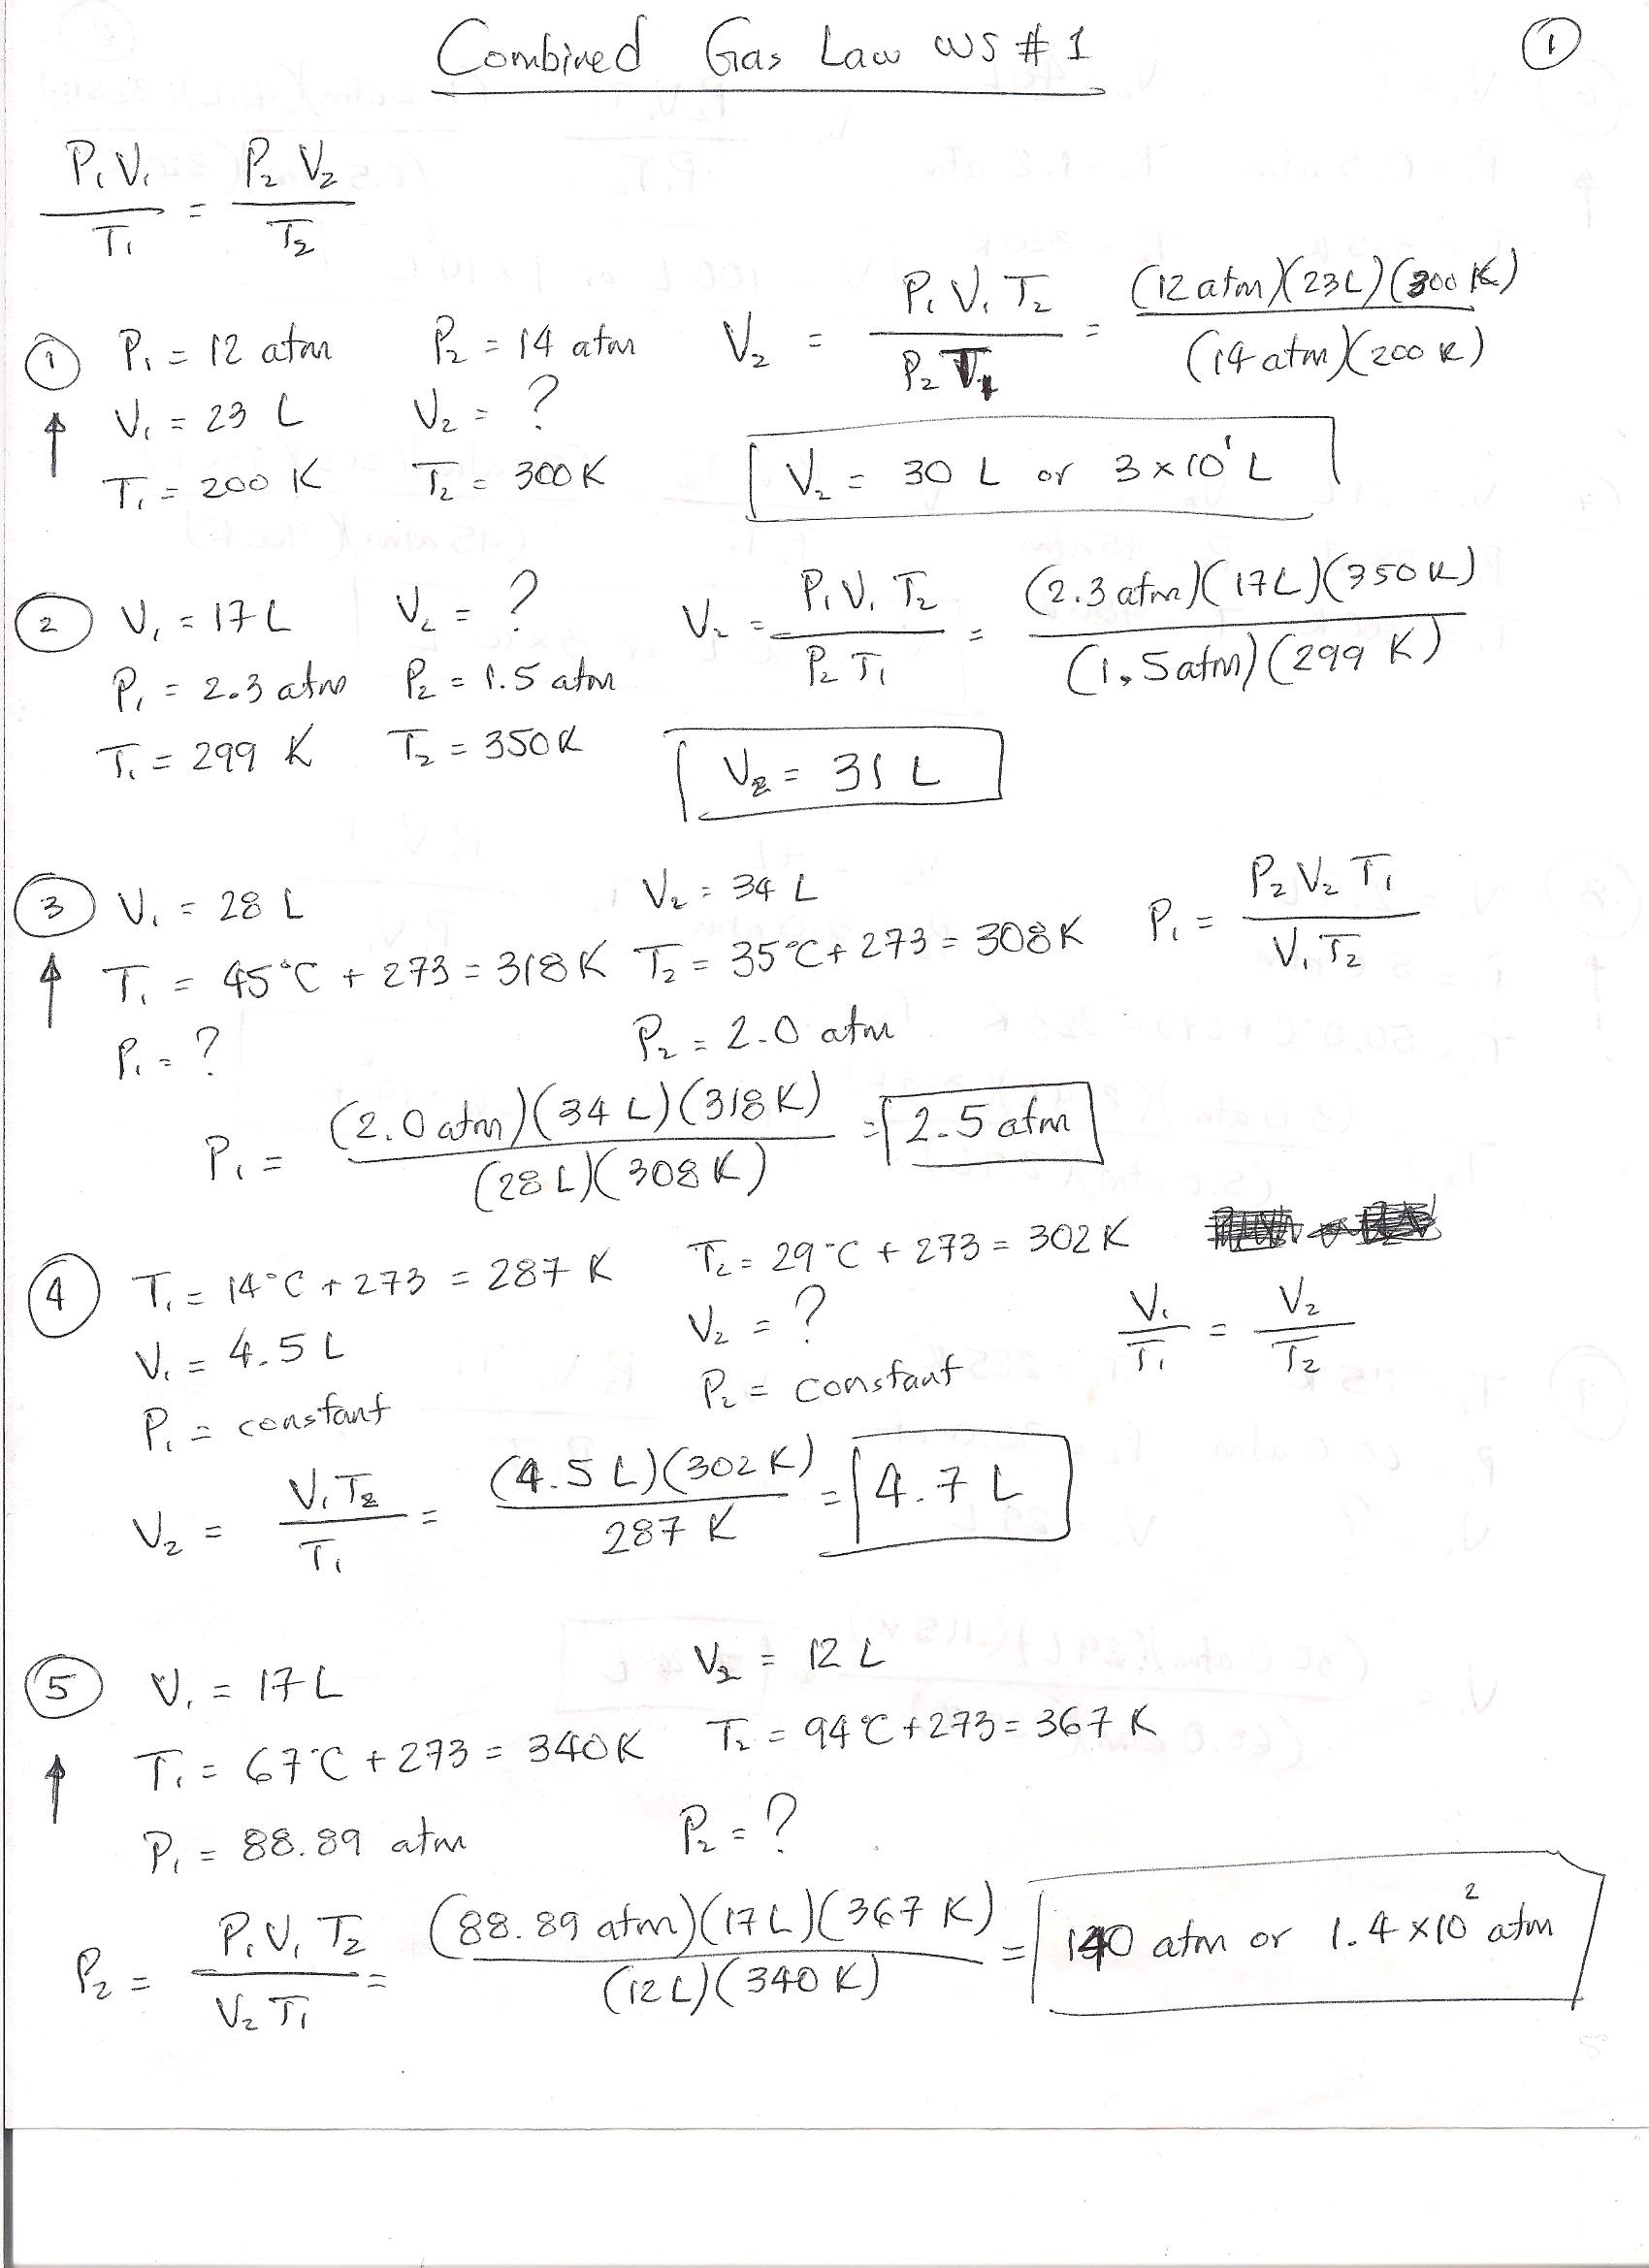 Worksheets Ideal Gas Law Worksheet Answers gas laws worksheet answers virallyapp printables worksheets stemwaregudt combined law answer ideal practice key download on